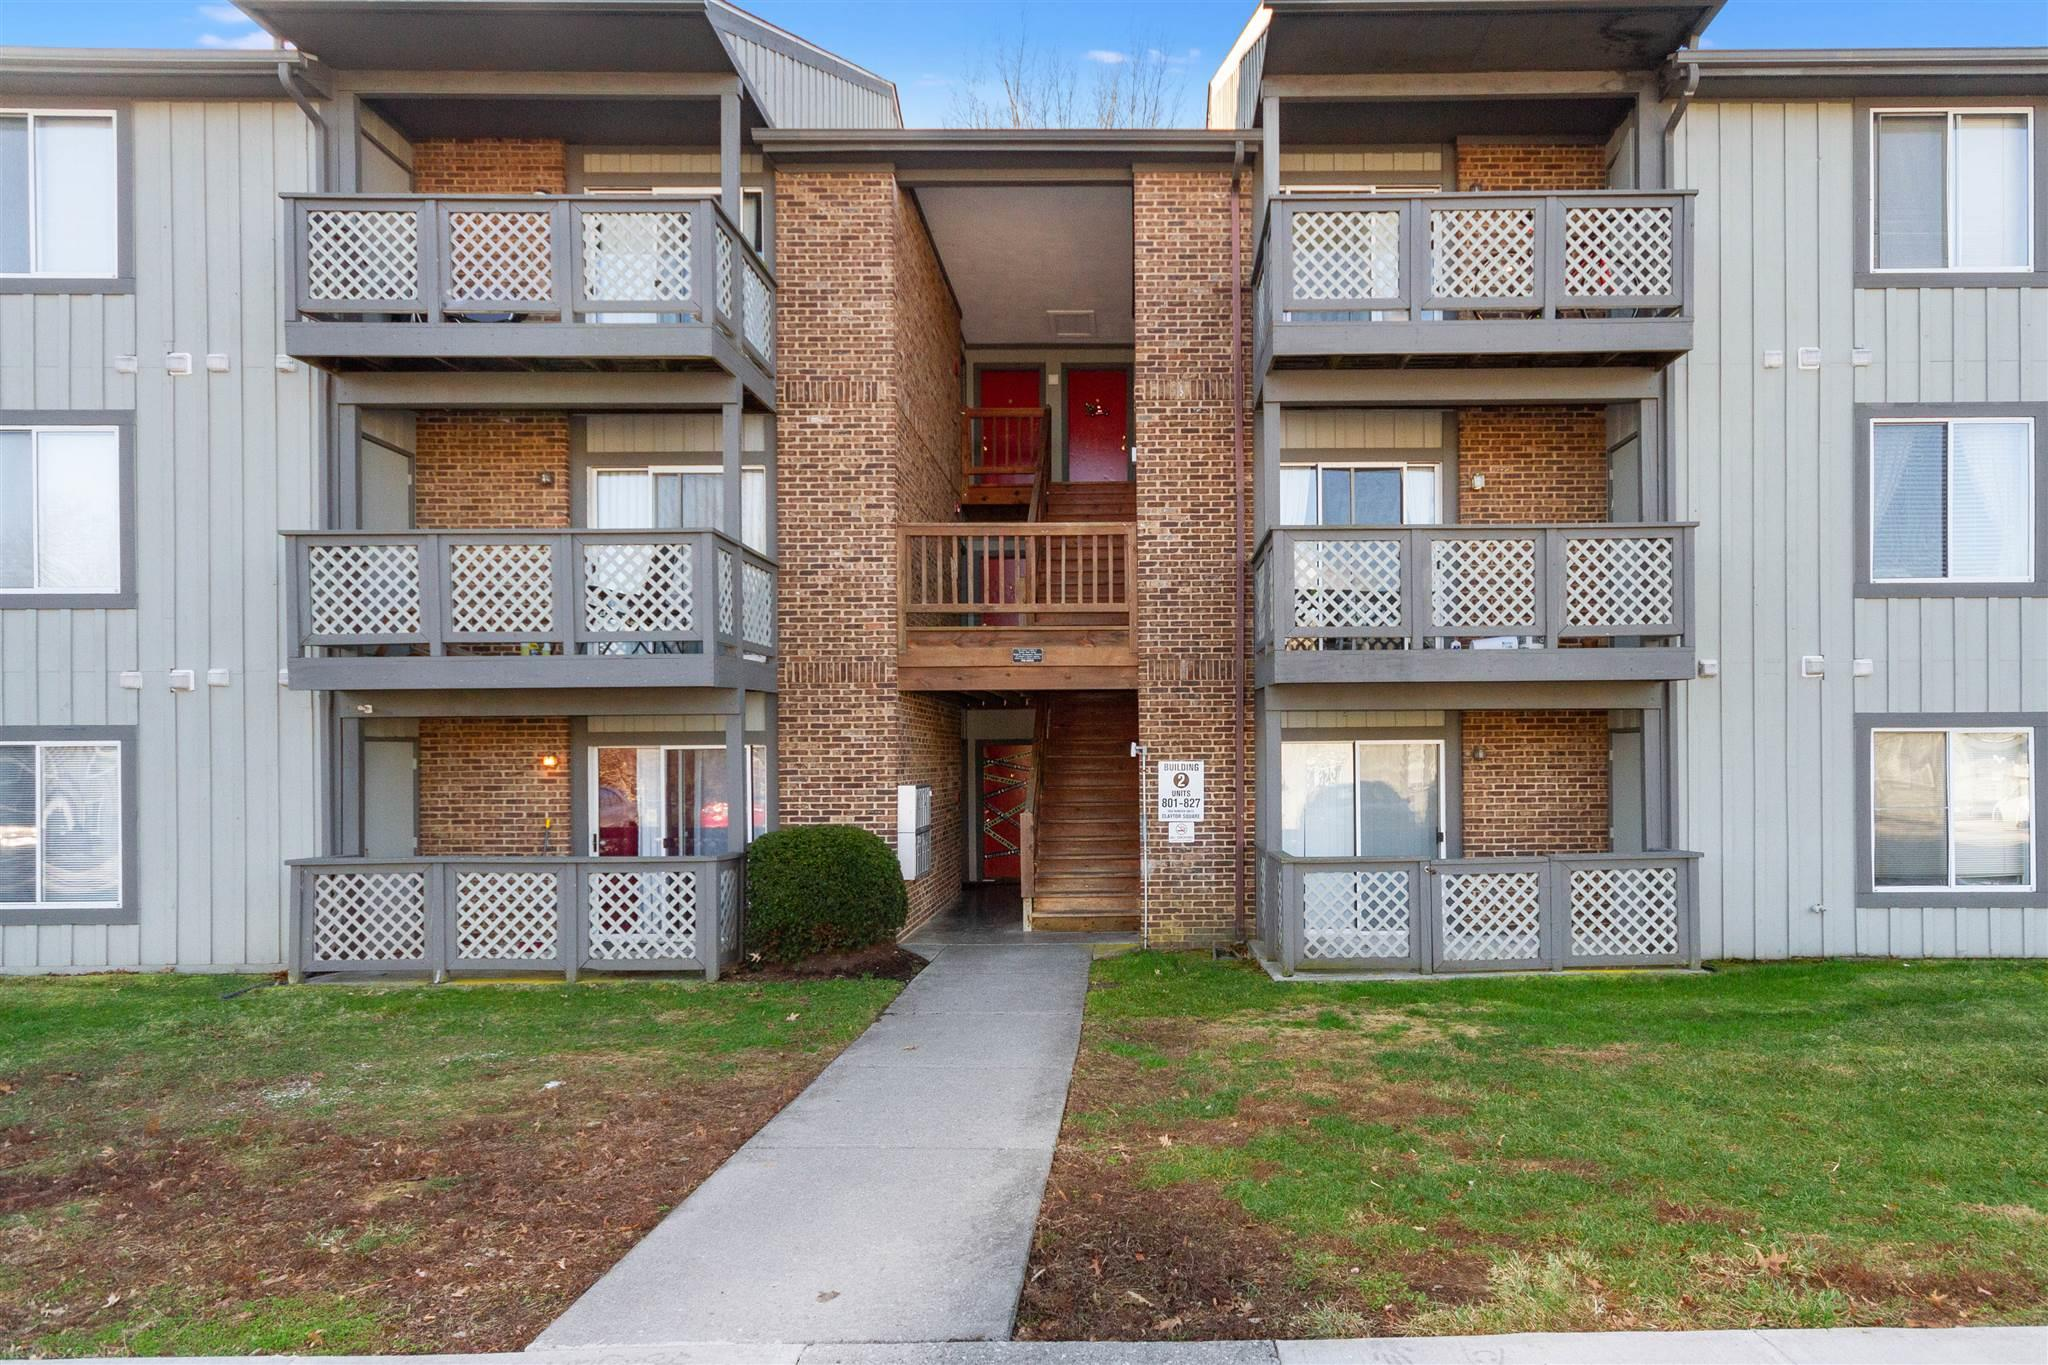 Immaculate 3 bedroom Condo in University Place.  Excellent investment opportunity or perfect for a student at Virginia Tech.  Walking distance to campus, shopping and more. Will not last long, call for an appointment today! Owner pays utilities.